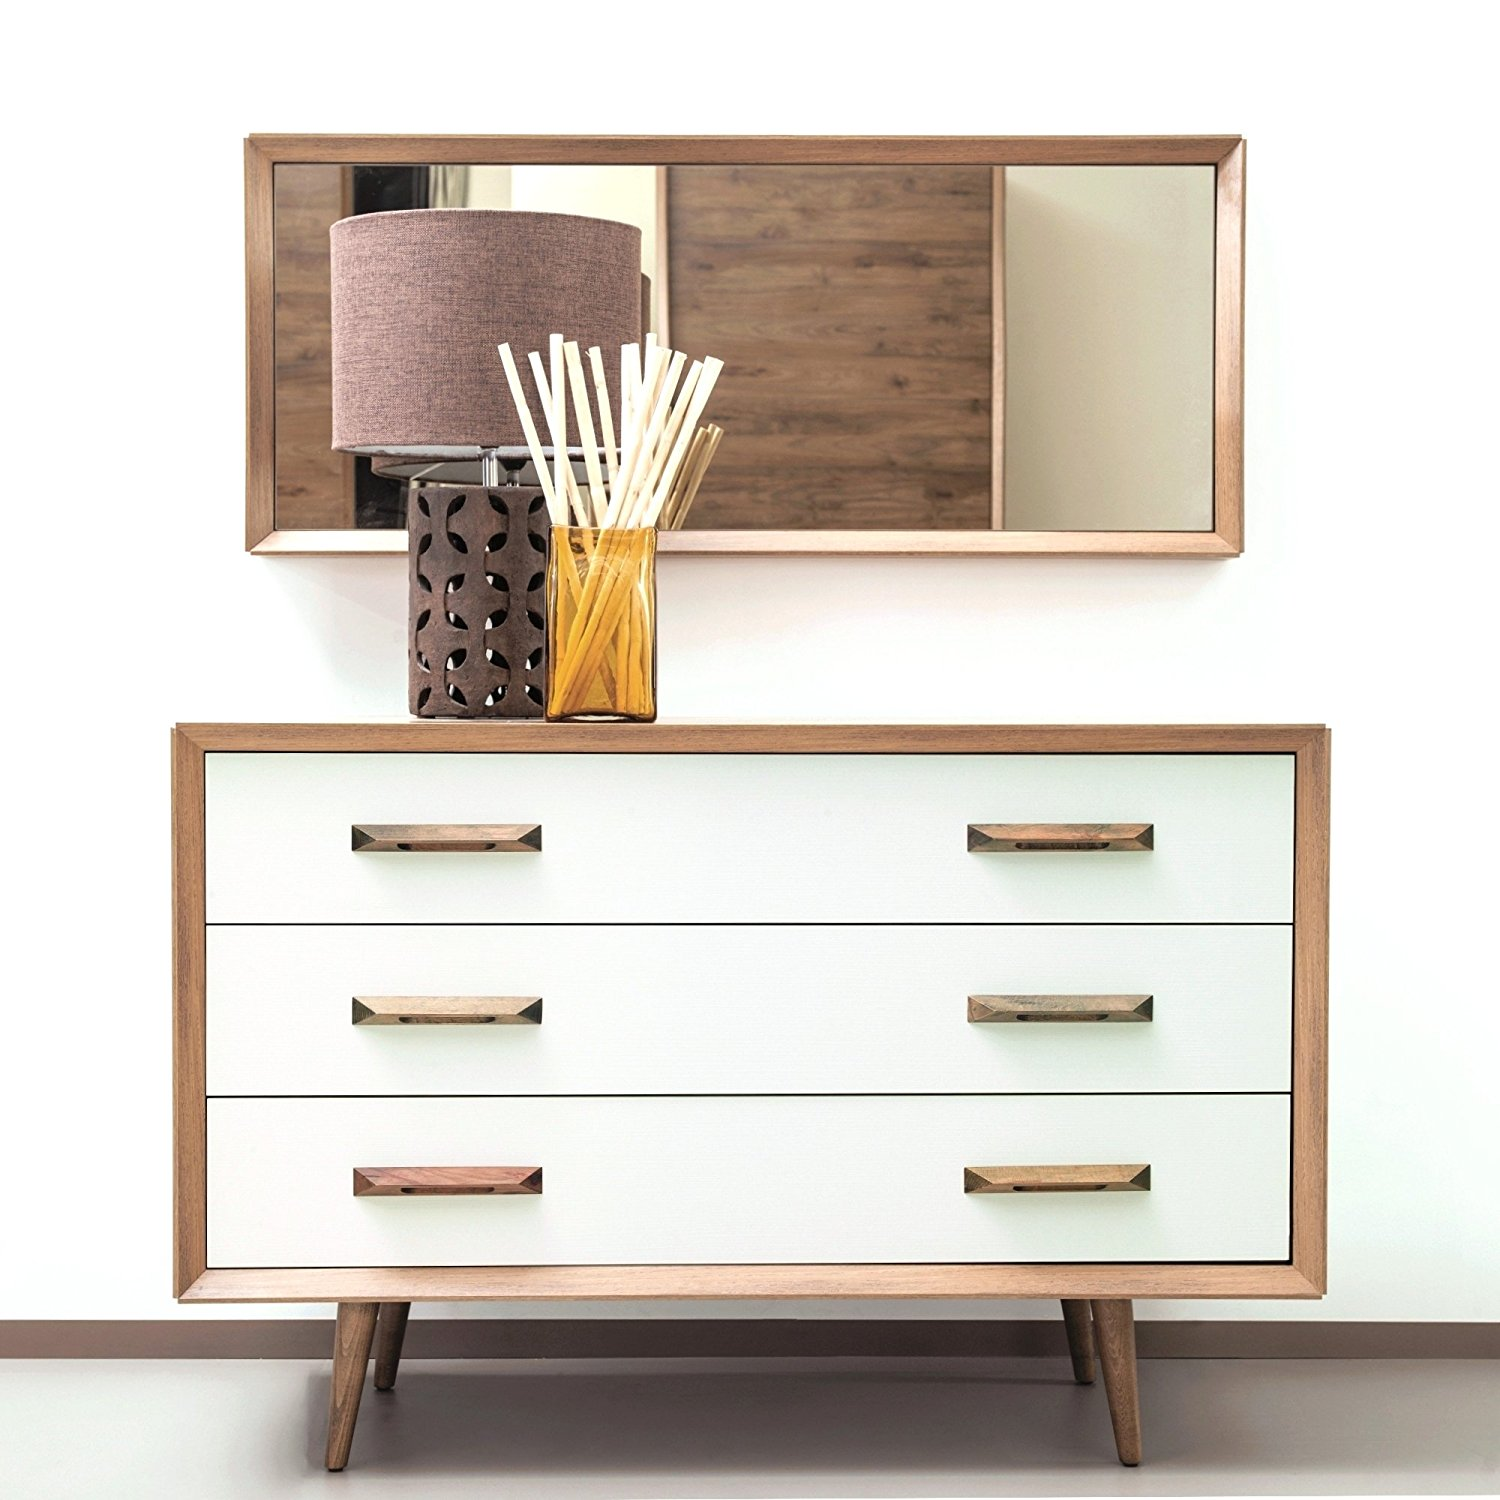 Adam and Illy ALT0267 Alto Chest of Drawers W/Mirror, Sherwood Oak/Moonstone